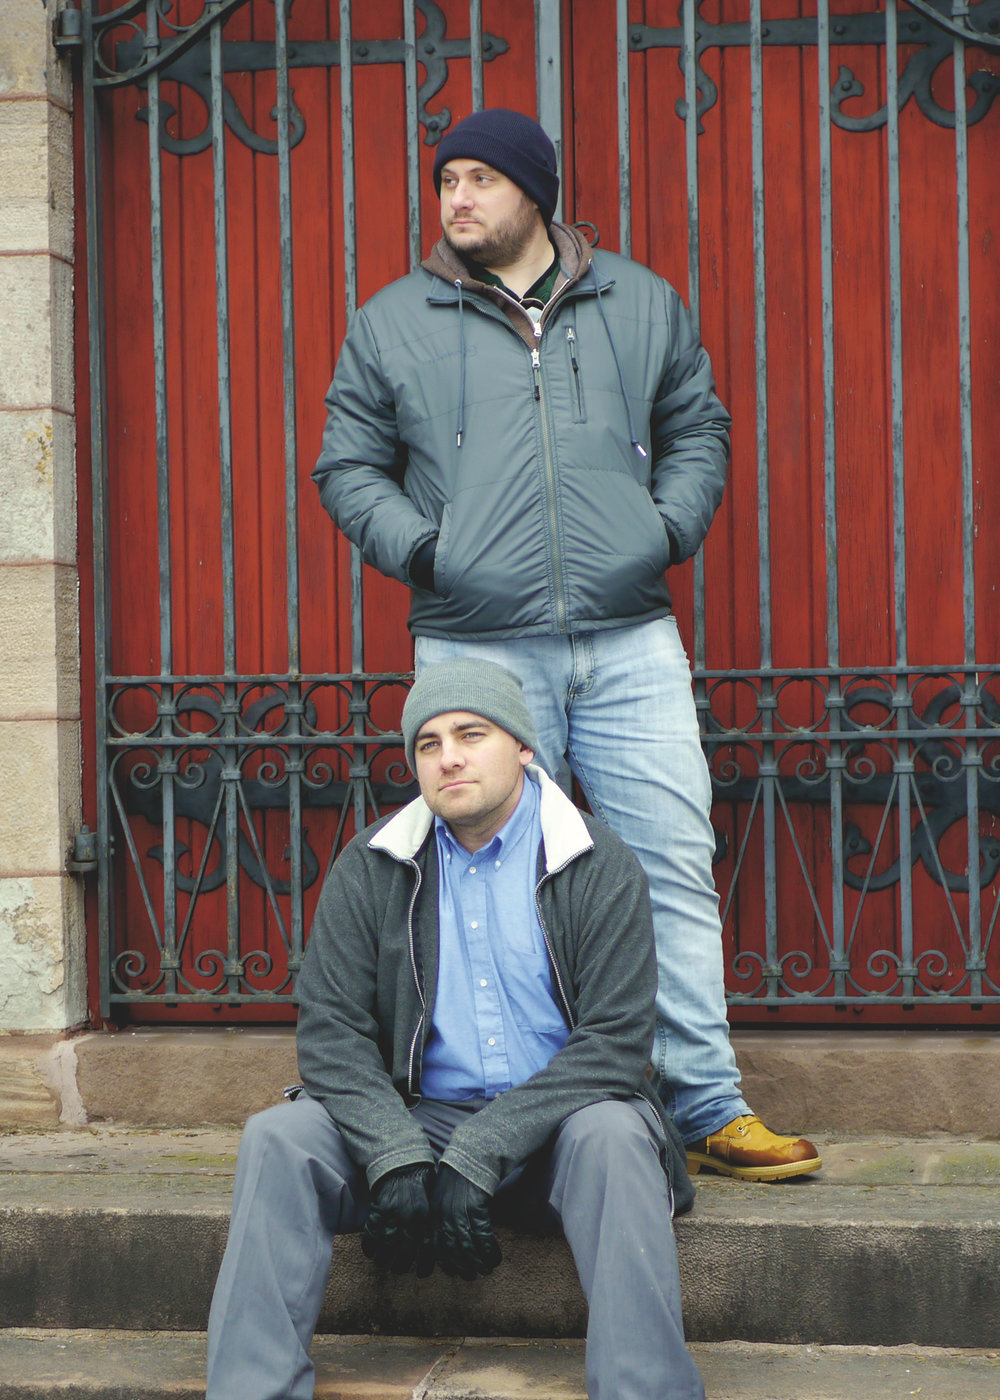 Mike and Daniel - Best friends and yet polar opposites of each other. Daniel StonewellDaniel works at a small advertising firm in Manhattan, living a busy professional life with little distraction from his every day world. Mike GibsonMike is an EMT in Brooklyn and spends his time online searching for unusual history, the Paranormal and Supernatural. He has a reasonably successful On-line Video Blog with over 5,000 subscribers.